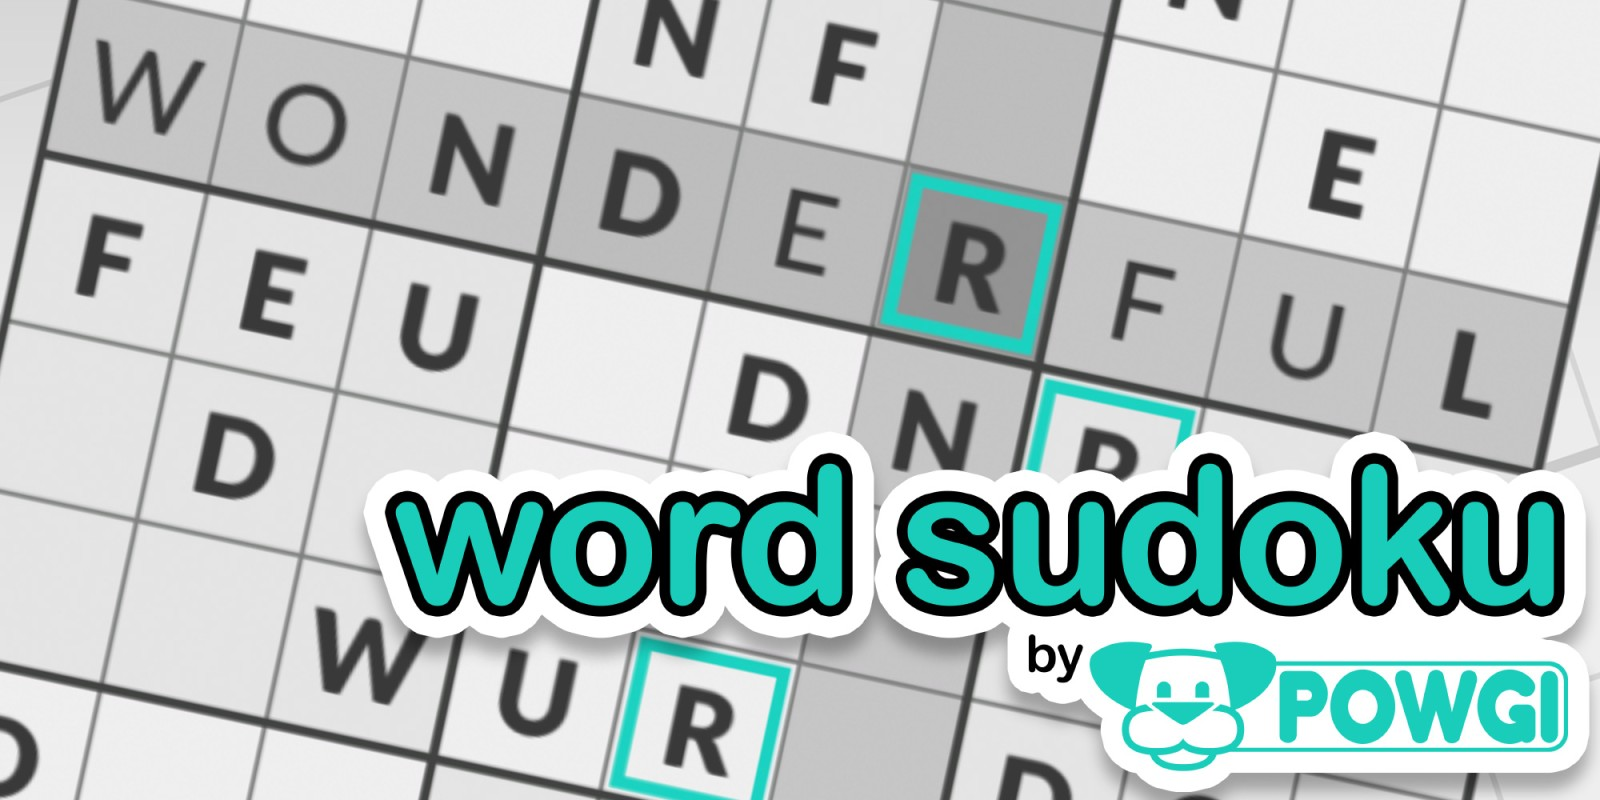 Word Sudoku by POWGI